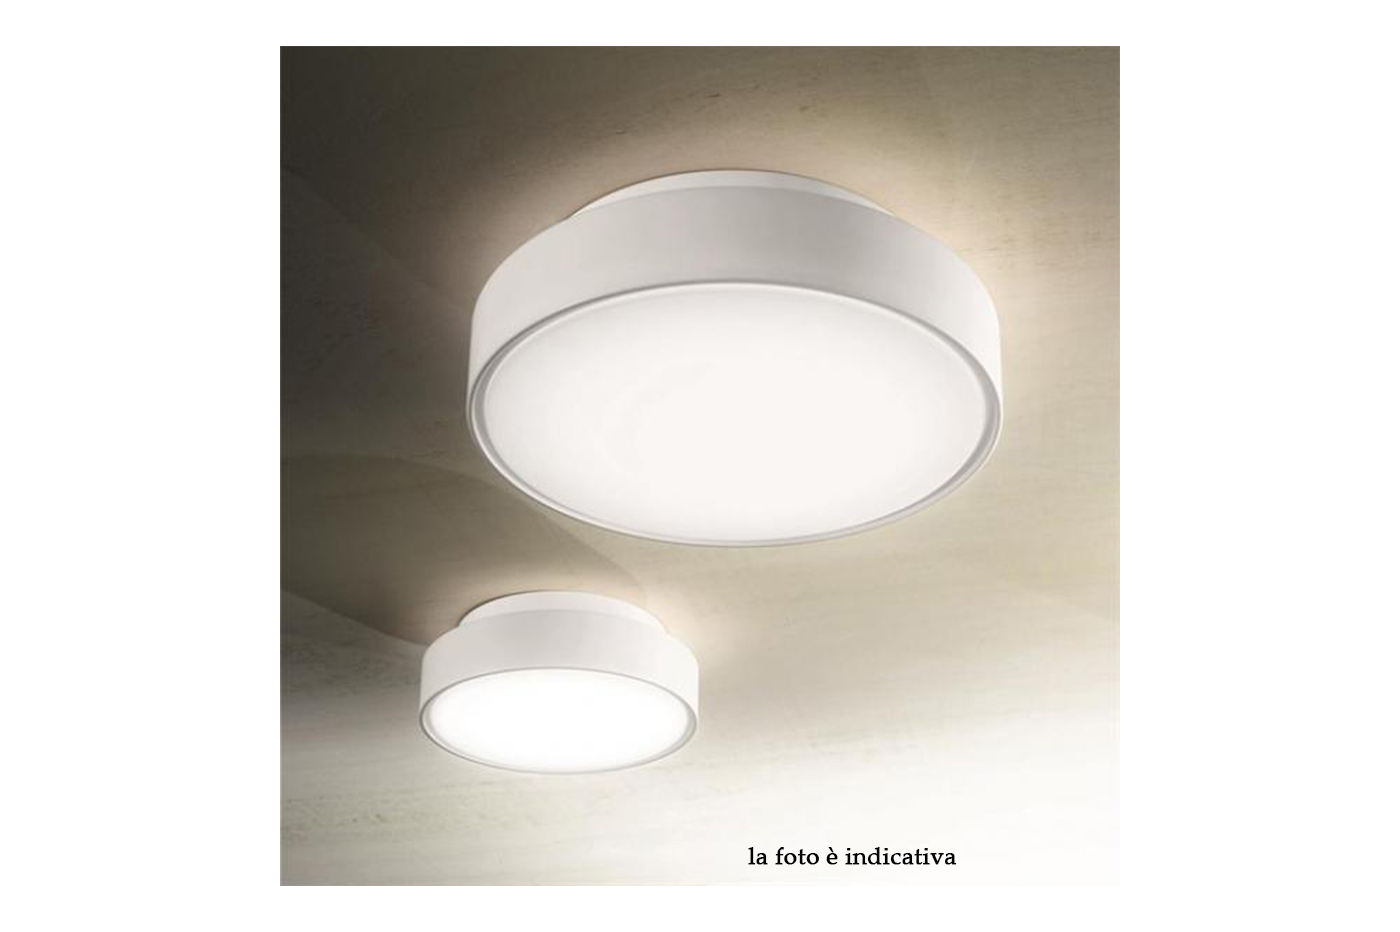 Plafoniere Led A Soffitto : Bes plafoniere beselettronica plafoniera led soffitto